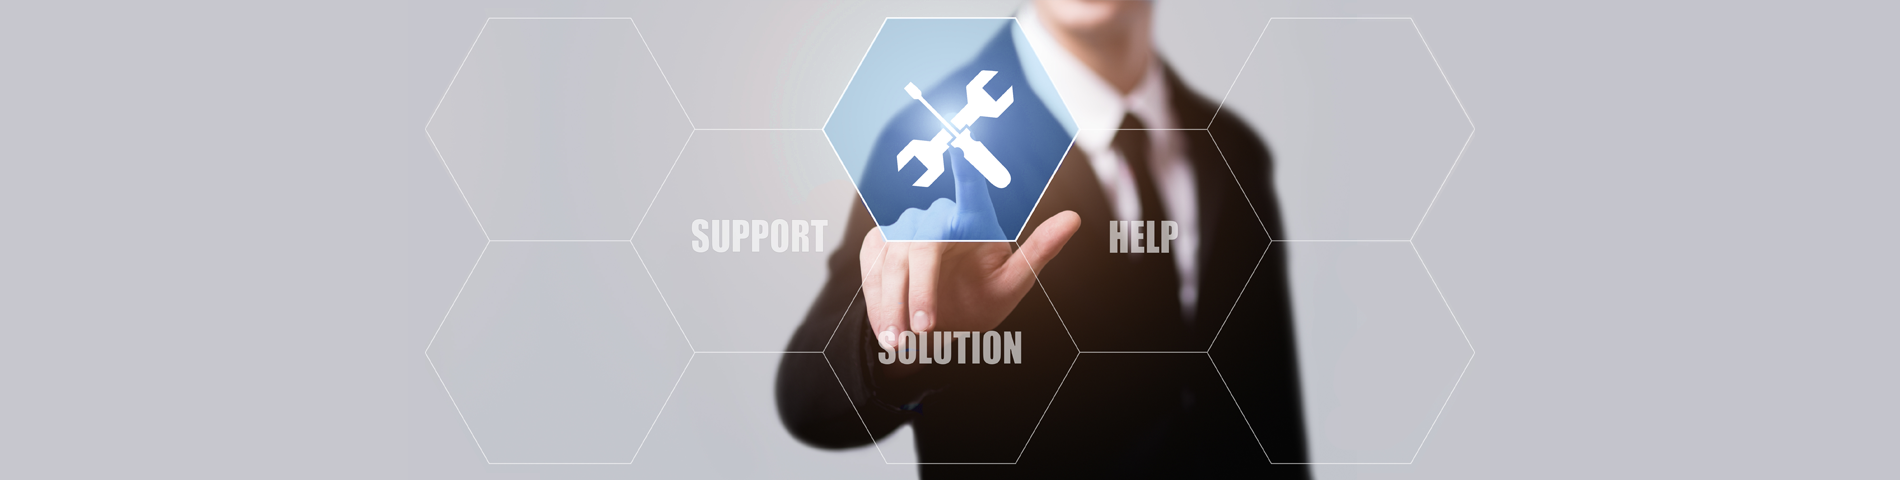 Support Solution Help